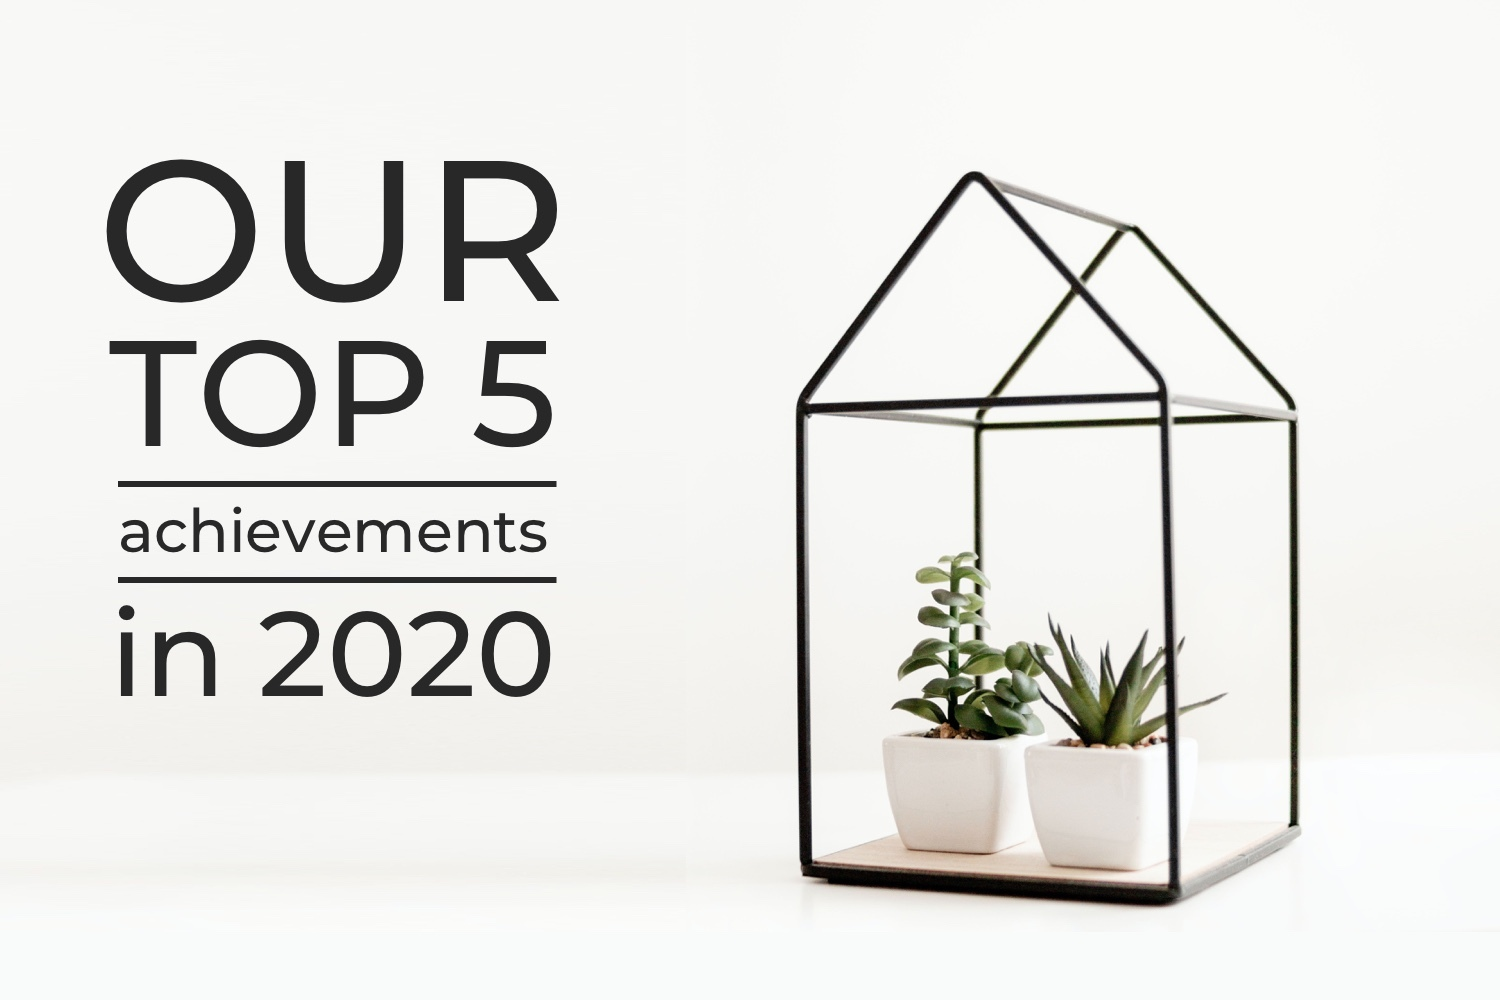 Top 5 achievements of Wequire in 2020